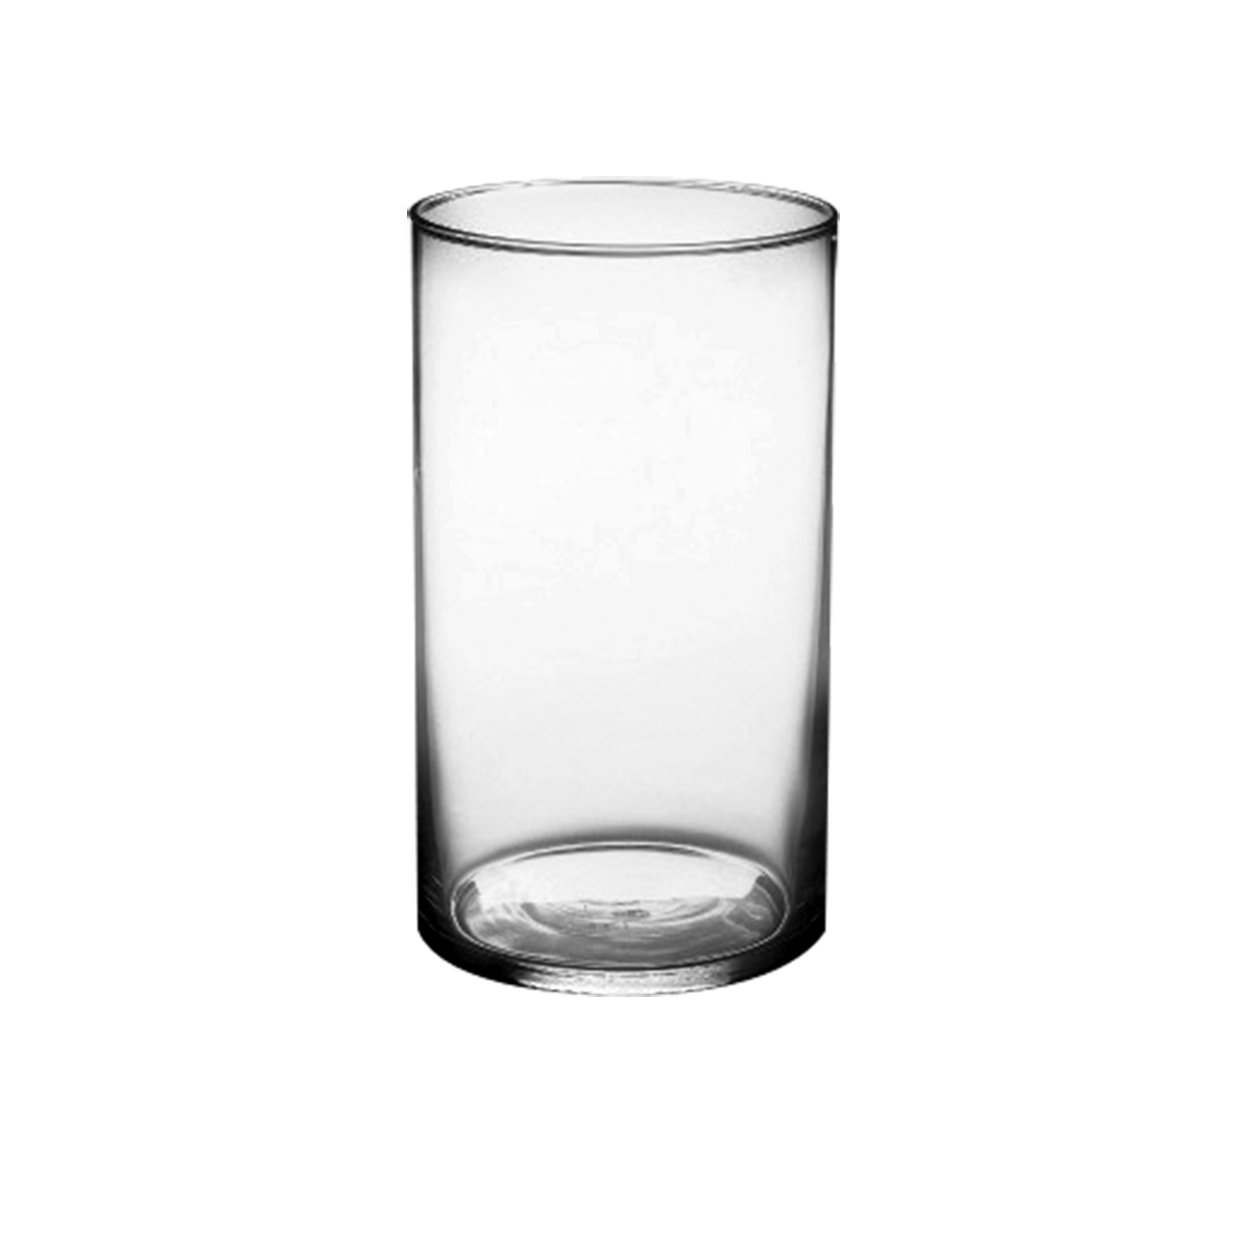 Amazon syndicate sales 3 12 x 6 cylinder vase clear amazon syndicate sales 3 12 x 6 cylinder vase clear planters garden outdoor reviewsmspy